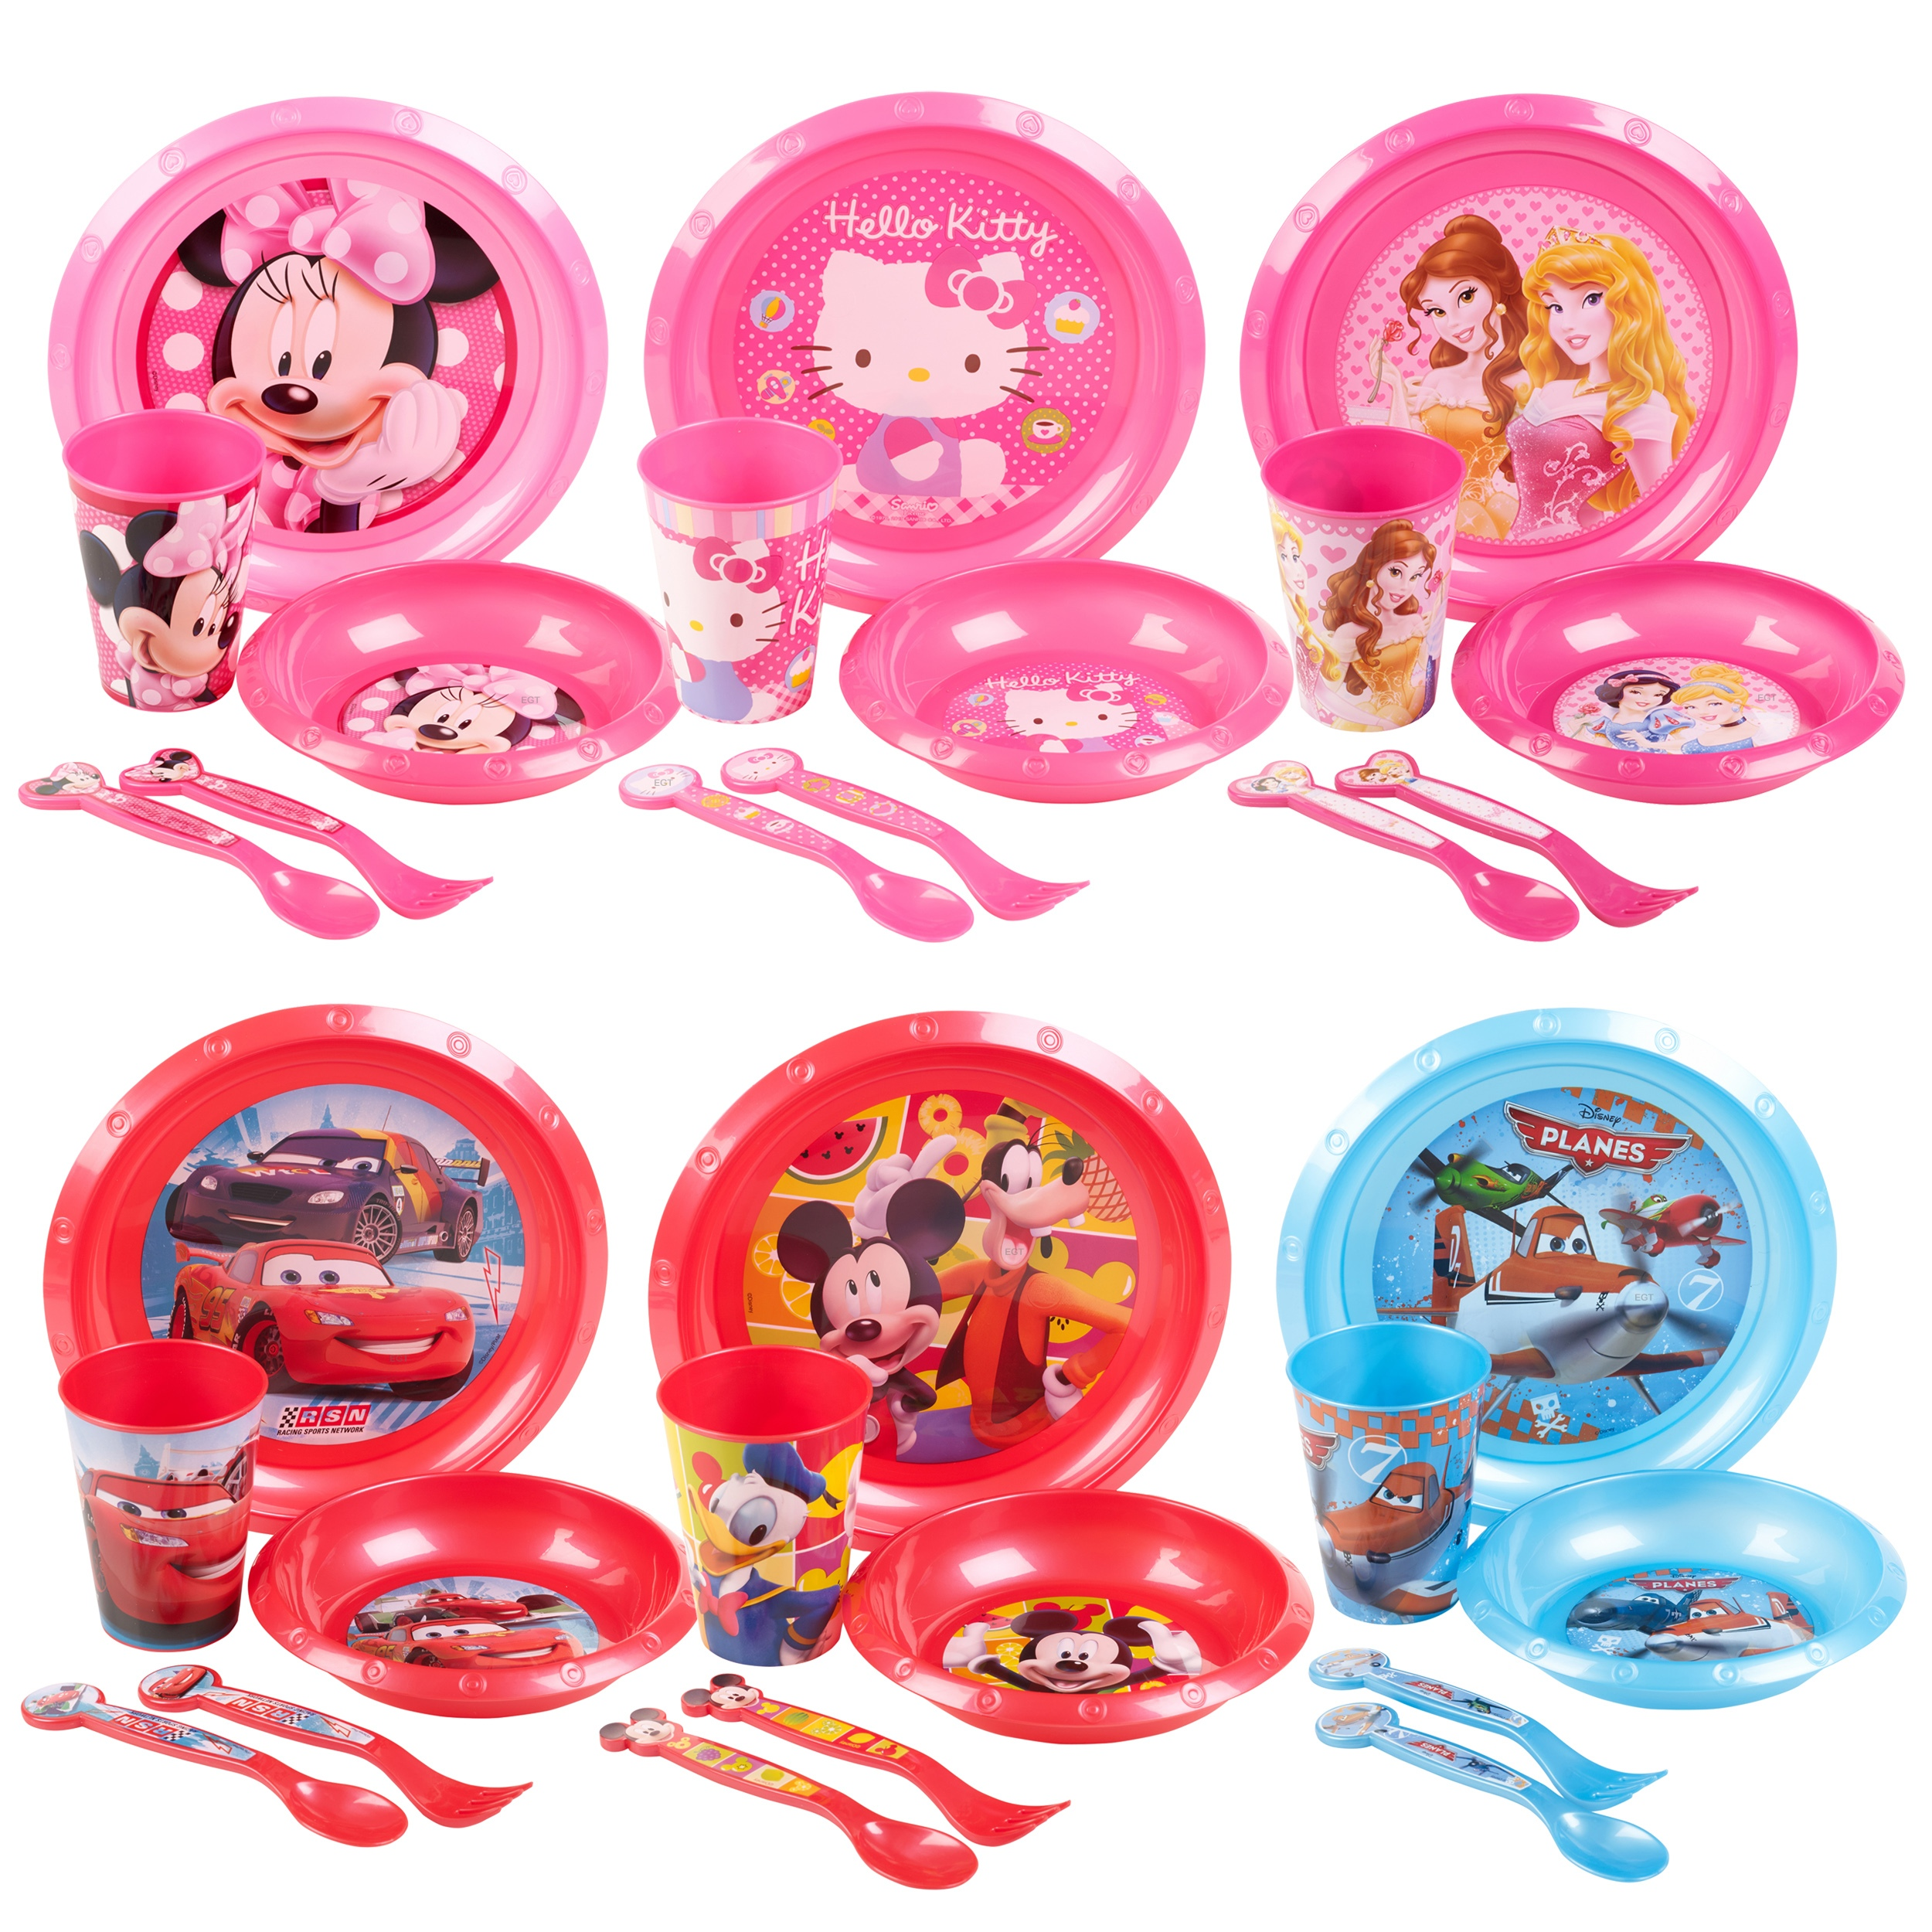 Disney  sc 1 st  eBay & Kids 5 Piece Disney Breakfast Dinner Lunch Supper Plate Bowl Cup ...